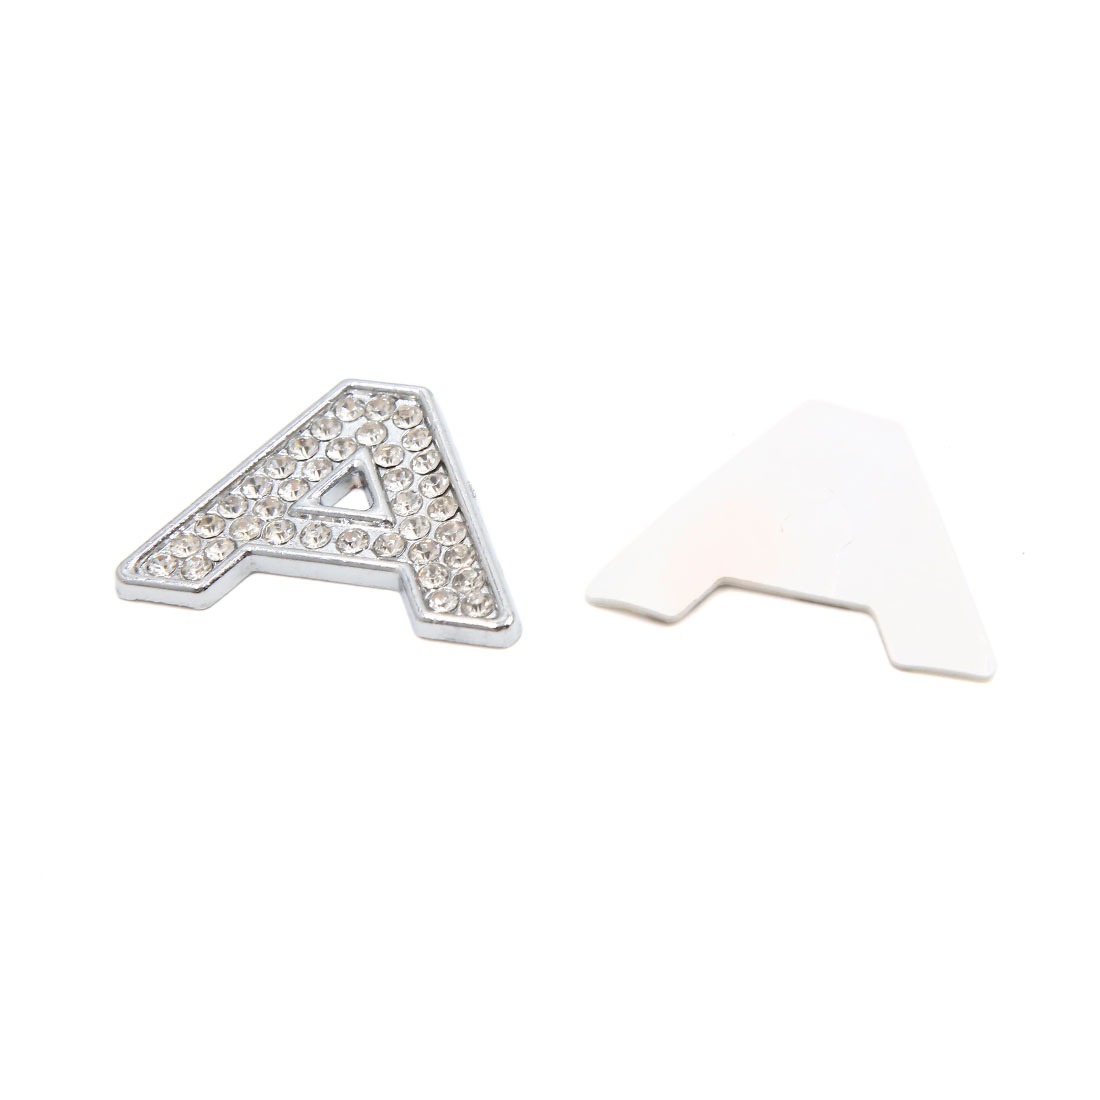 3D Silver Tone Metal Letter A Shaped Car Emblem Badge Sticker Decal Decoration